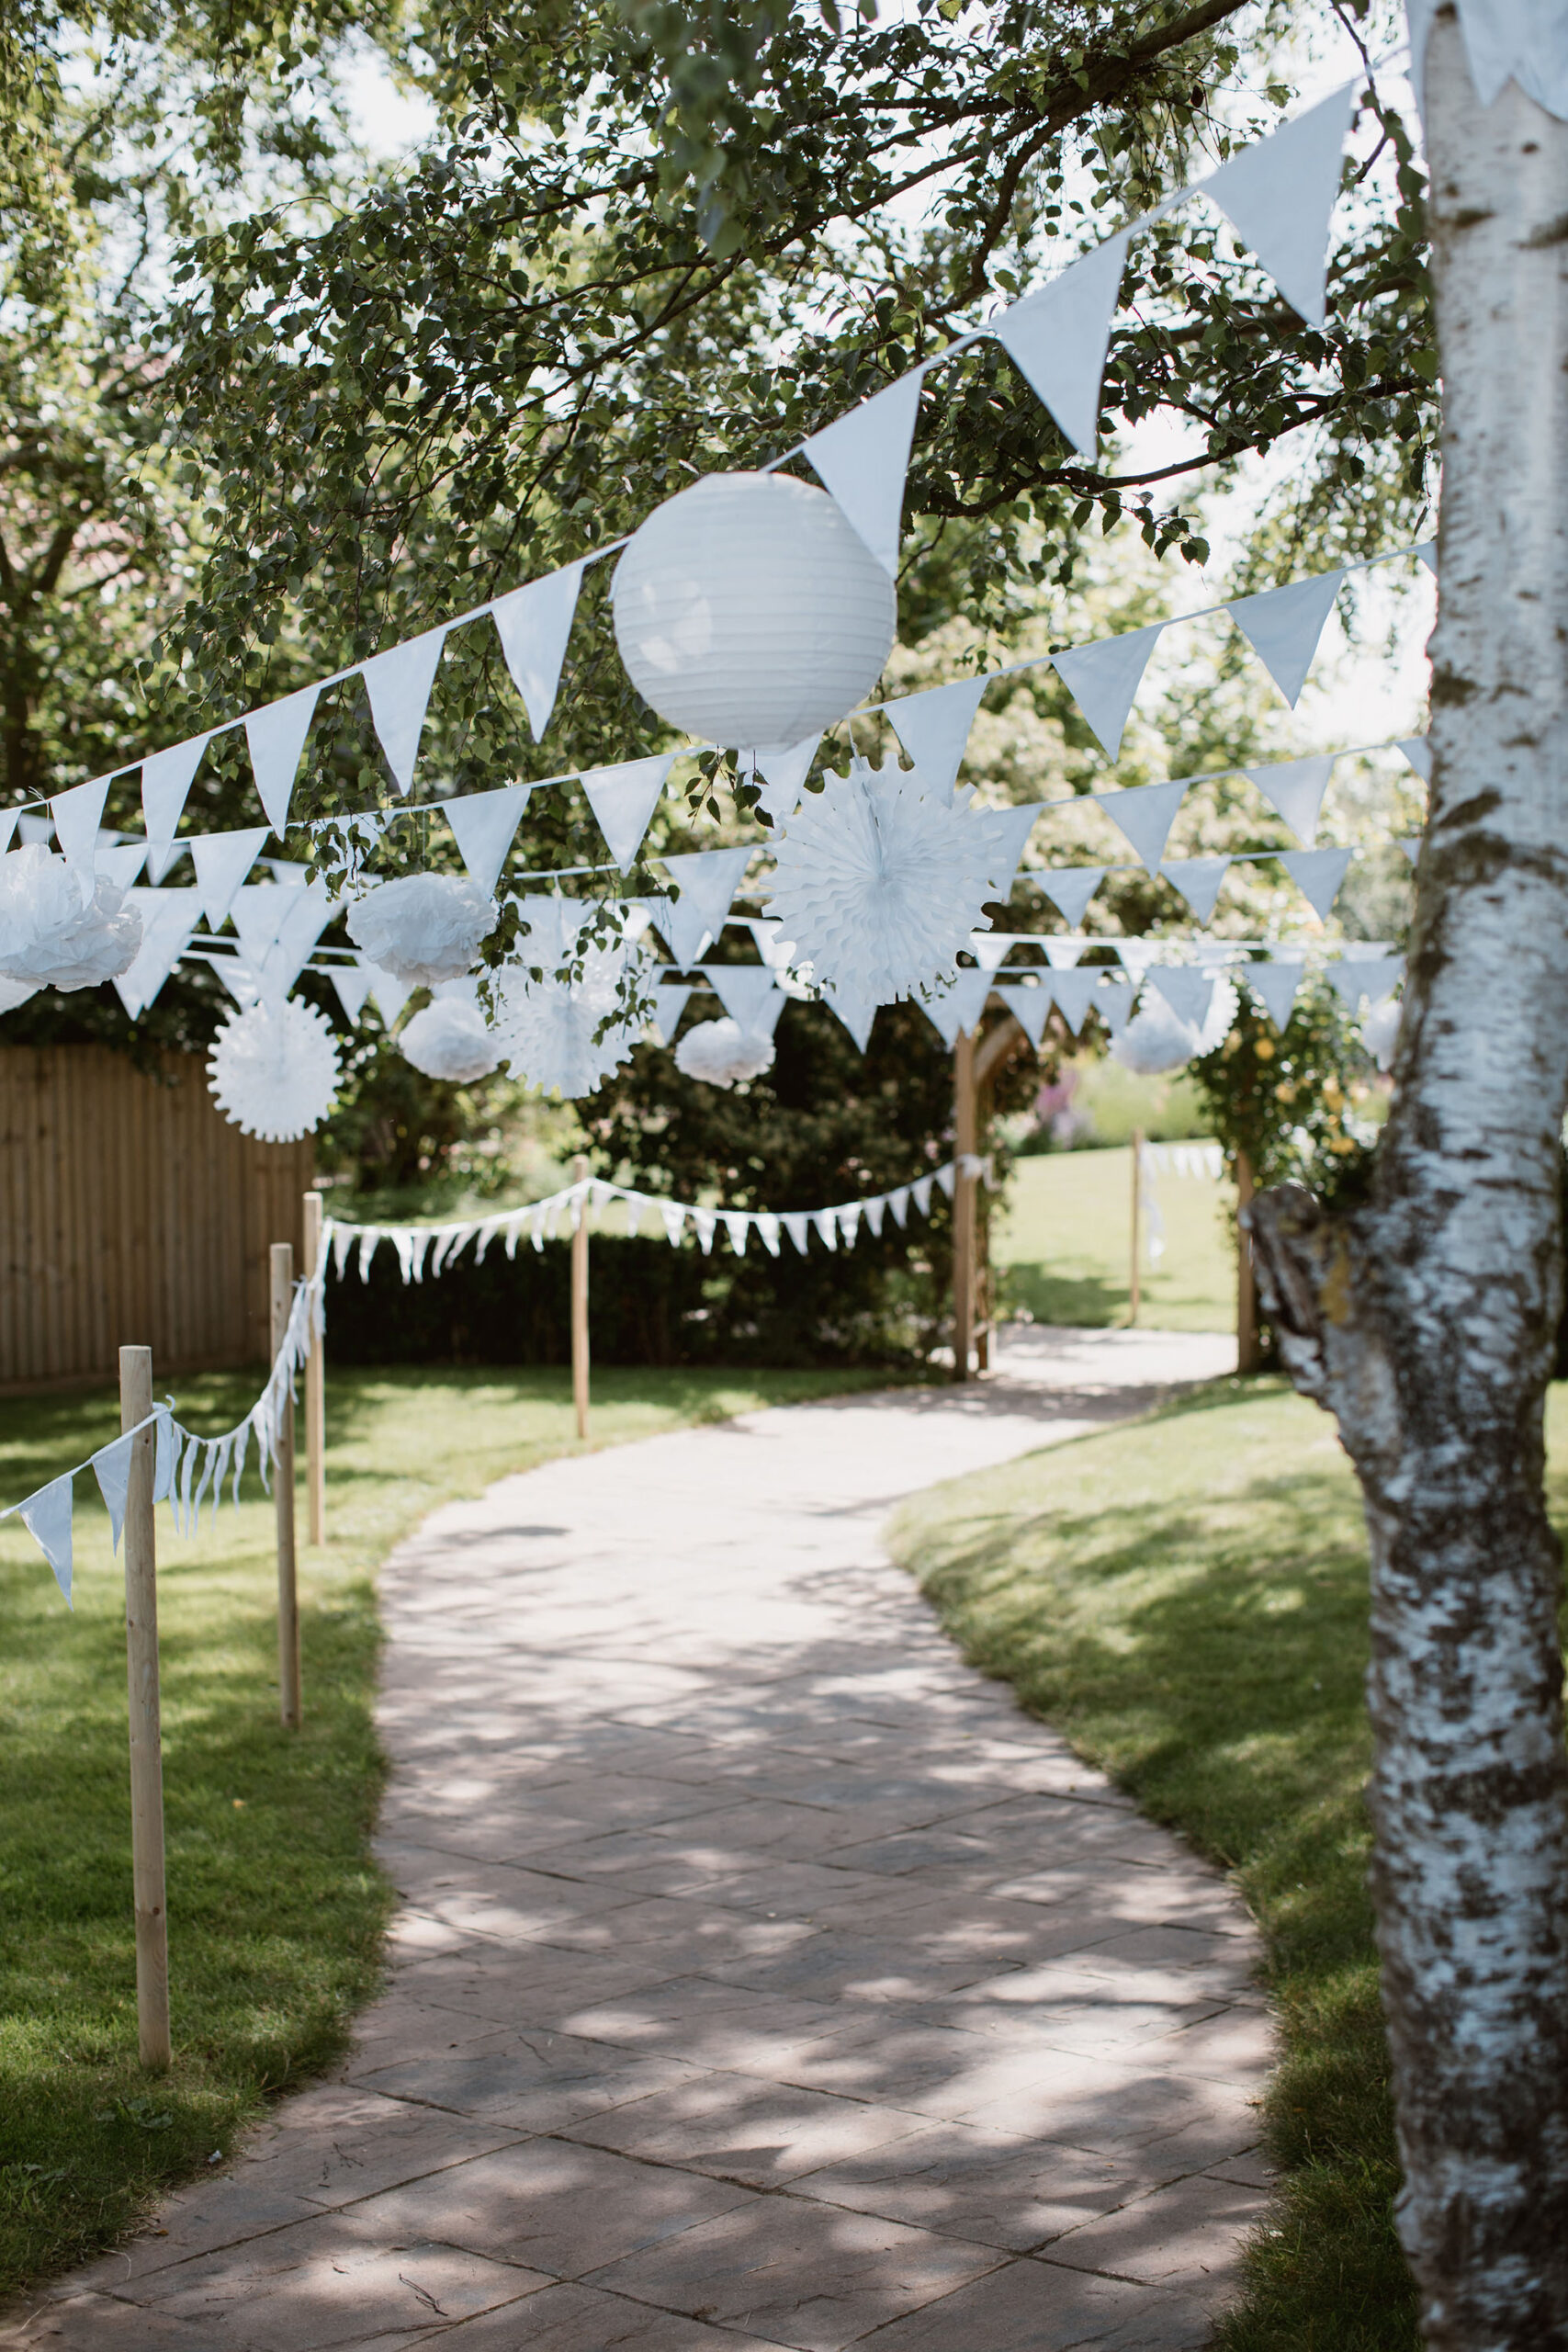 A garden pathway is decorated with bunting and balloons in white tied from trees. Wedding image by Luke Hayden Photography